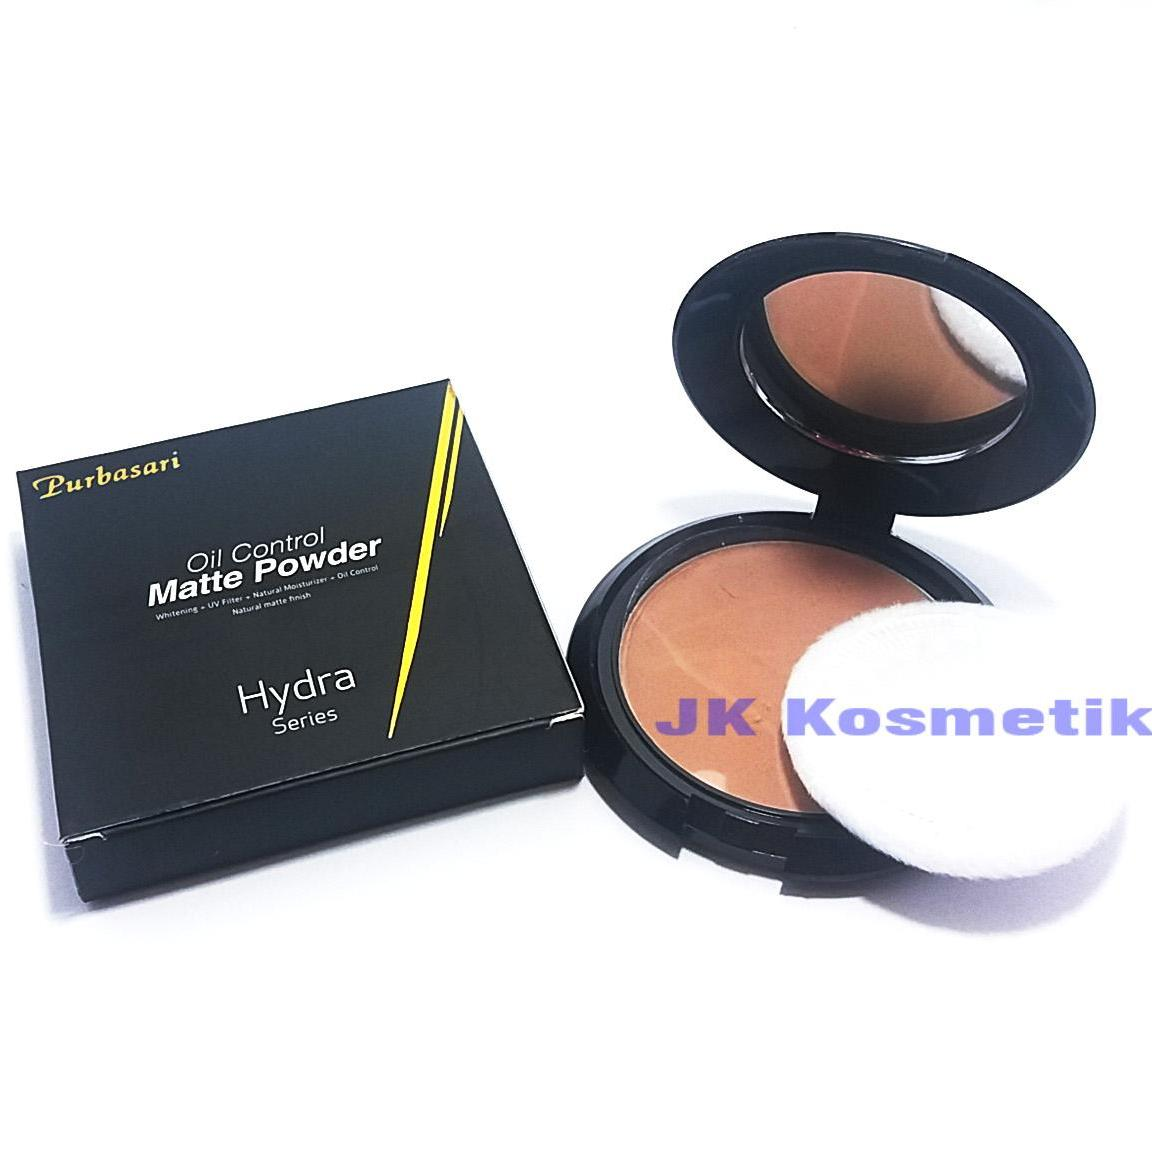 Purbasari Bedak Matte Powder Hydra Series NATURAL